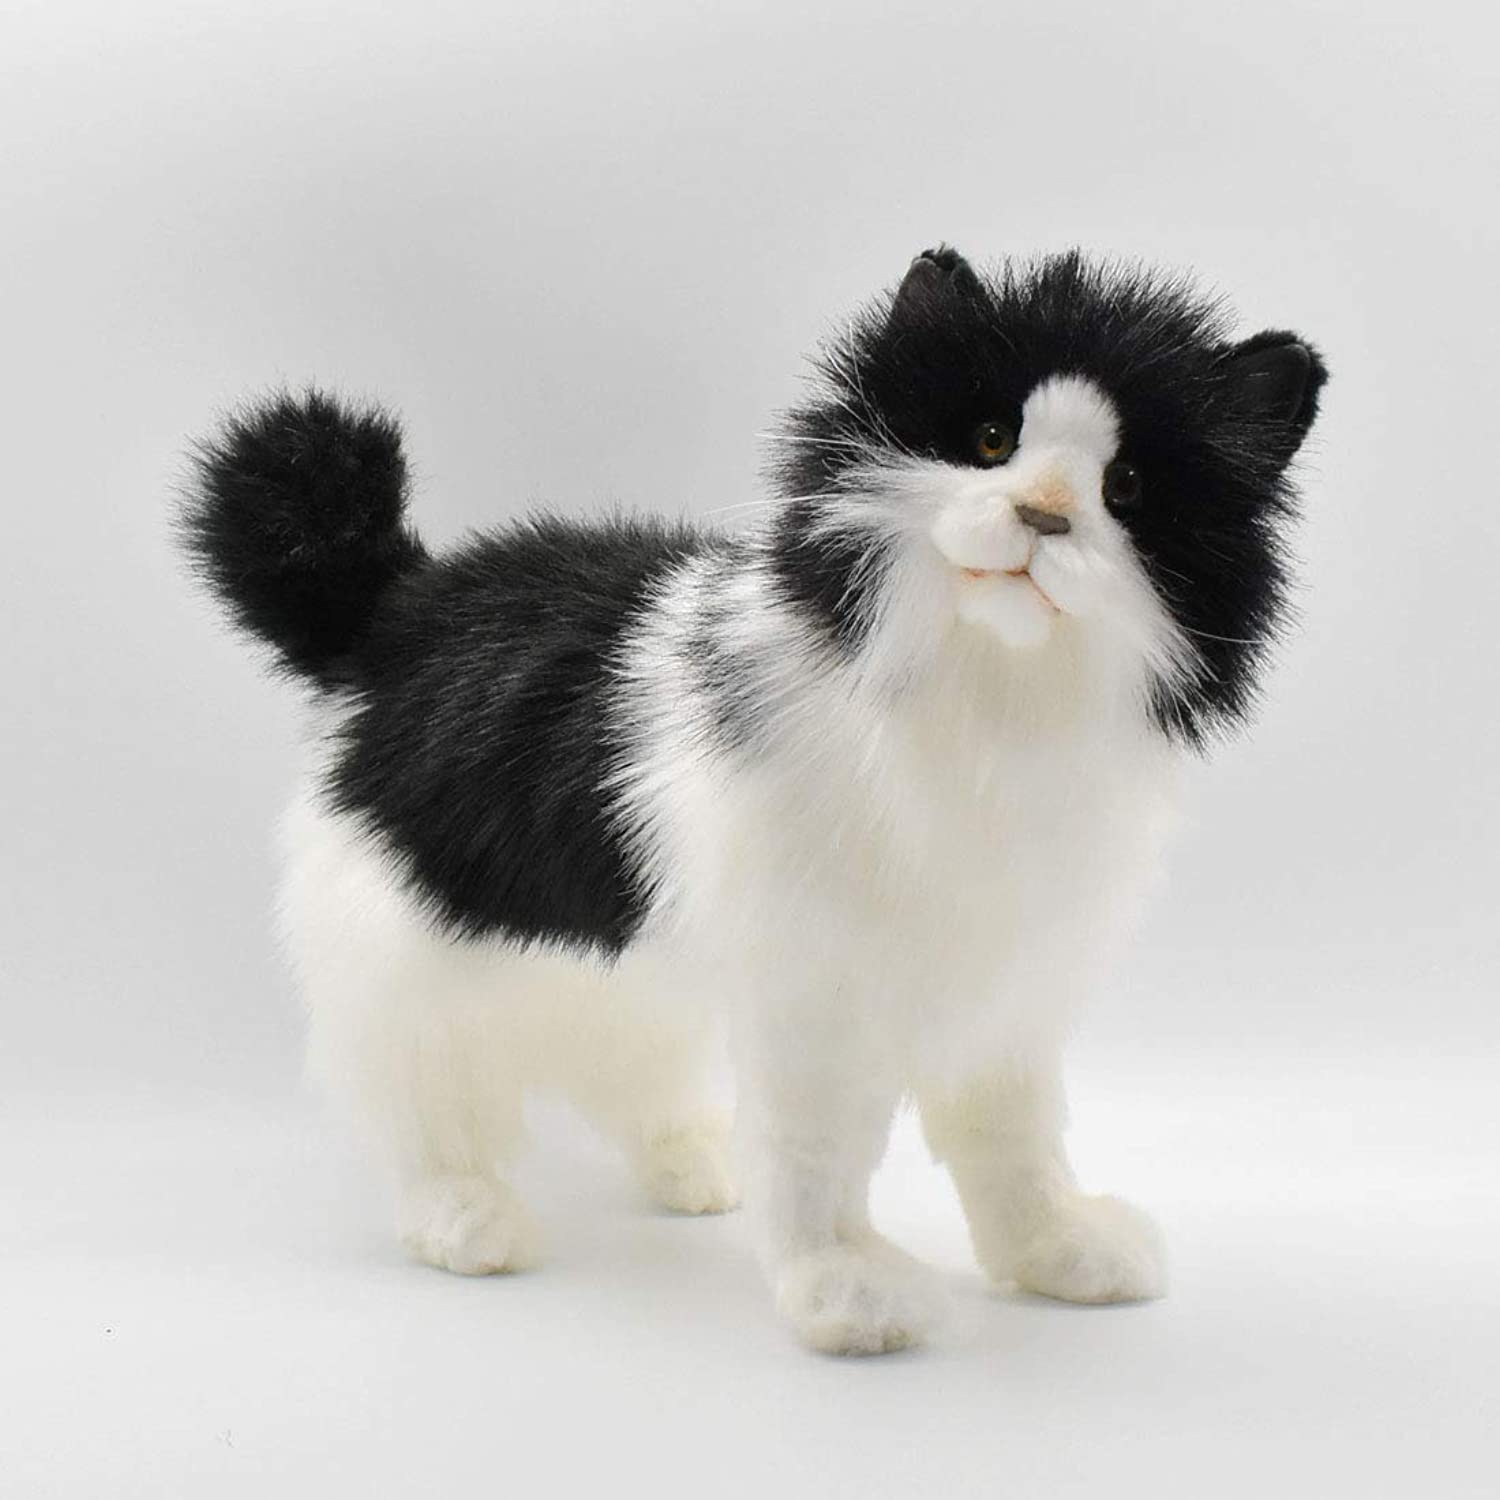 Standing Black & White Cat Plush Soft Toy by Hansa. 27cm.4221